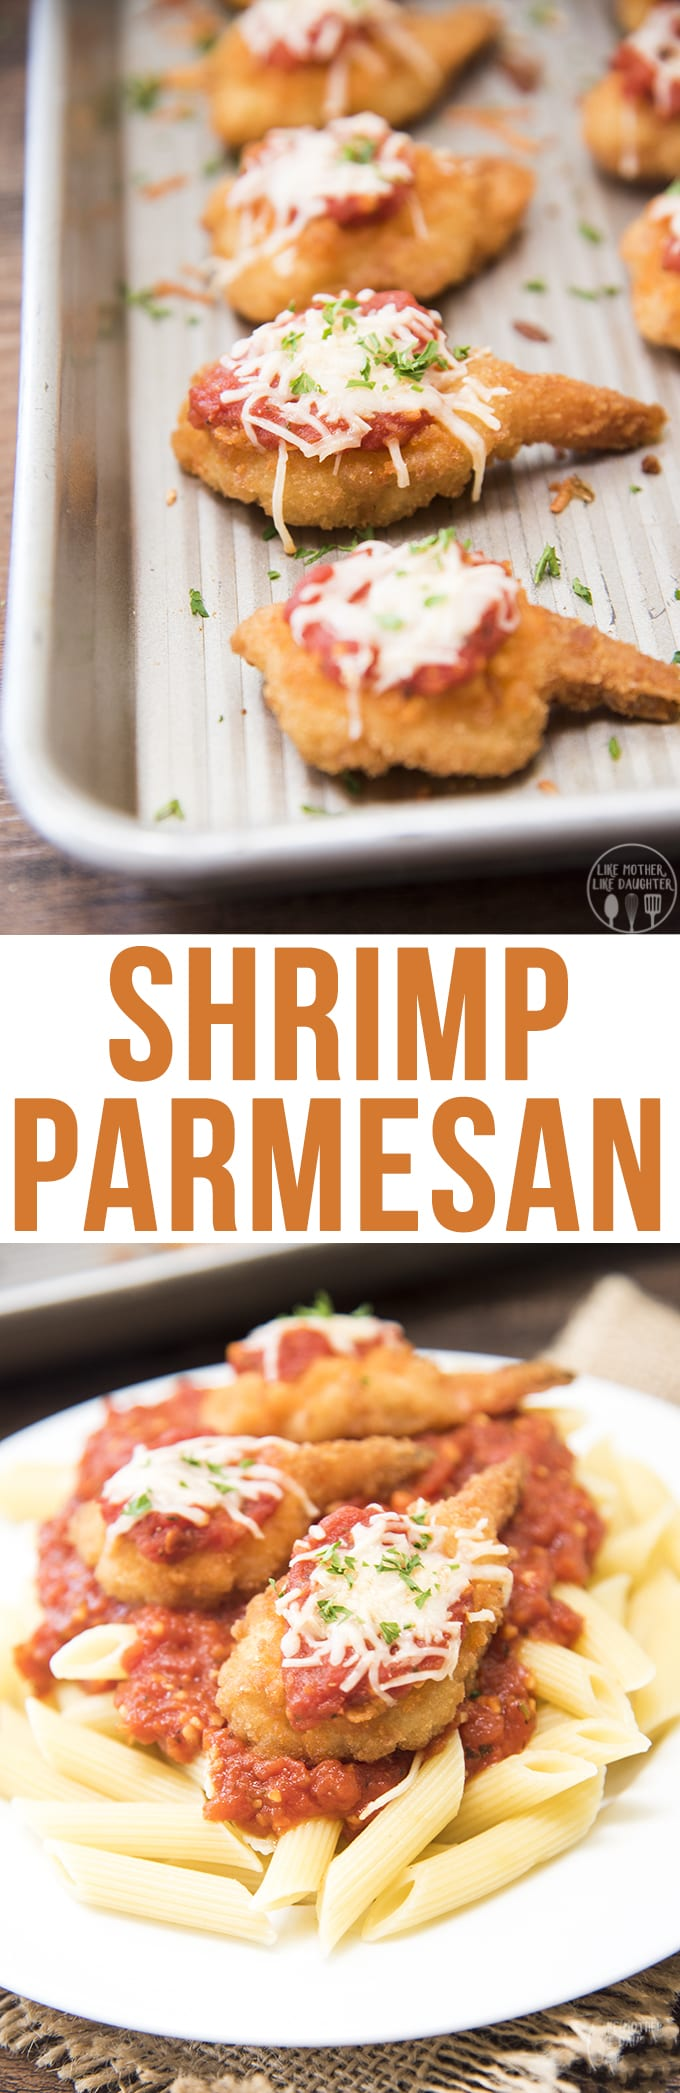 A delicioustwist on chicken parmesan, with battered shrimp topped with a simple marinara sauce and melty cheese. This shrimp parmesan is a dish everyone will enjoy!